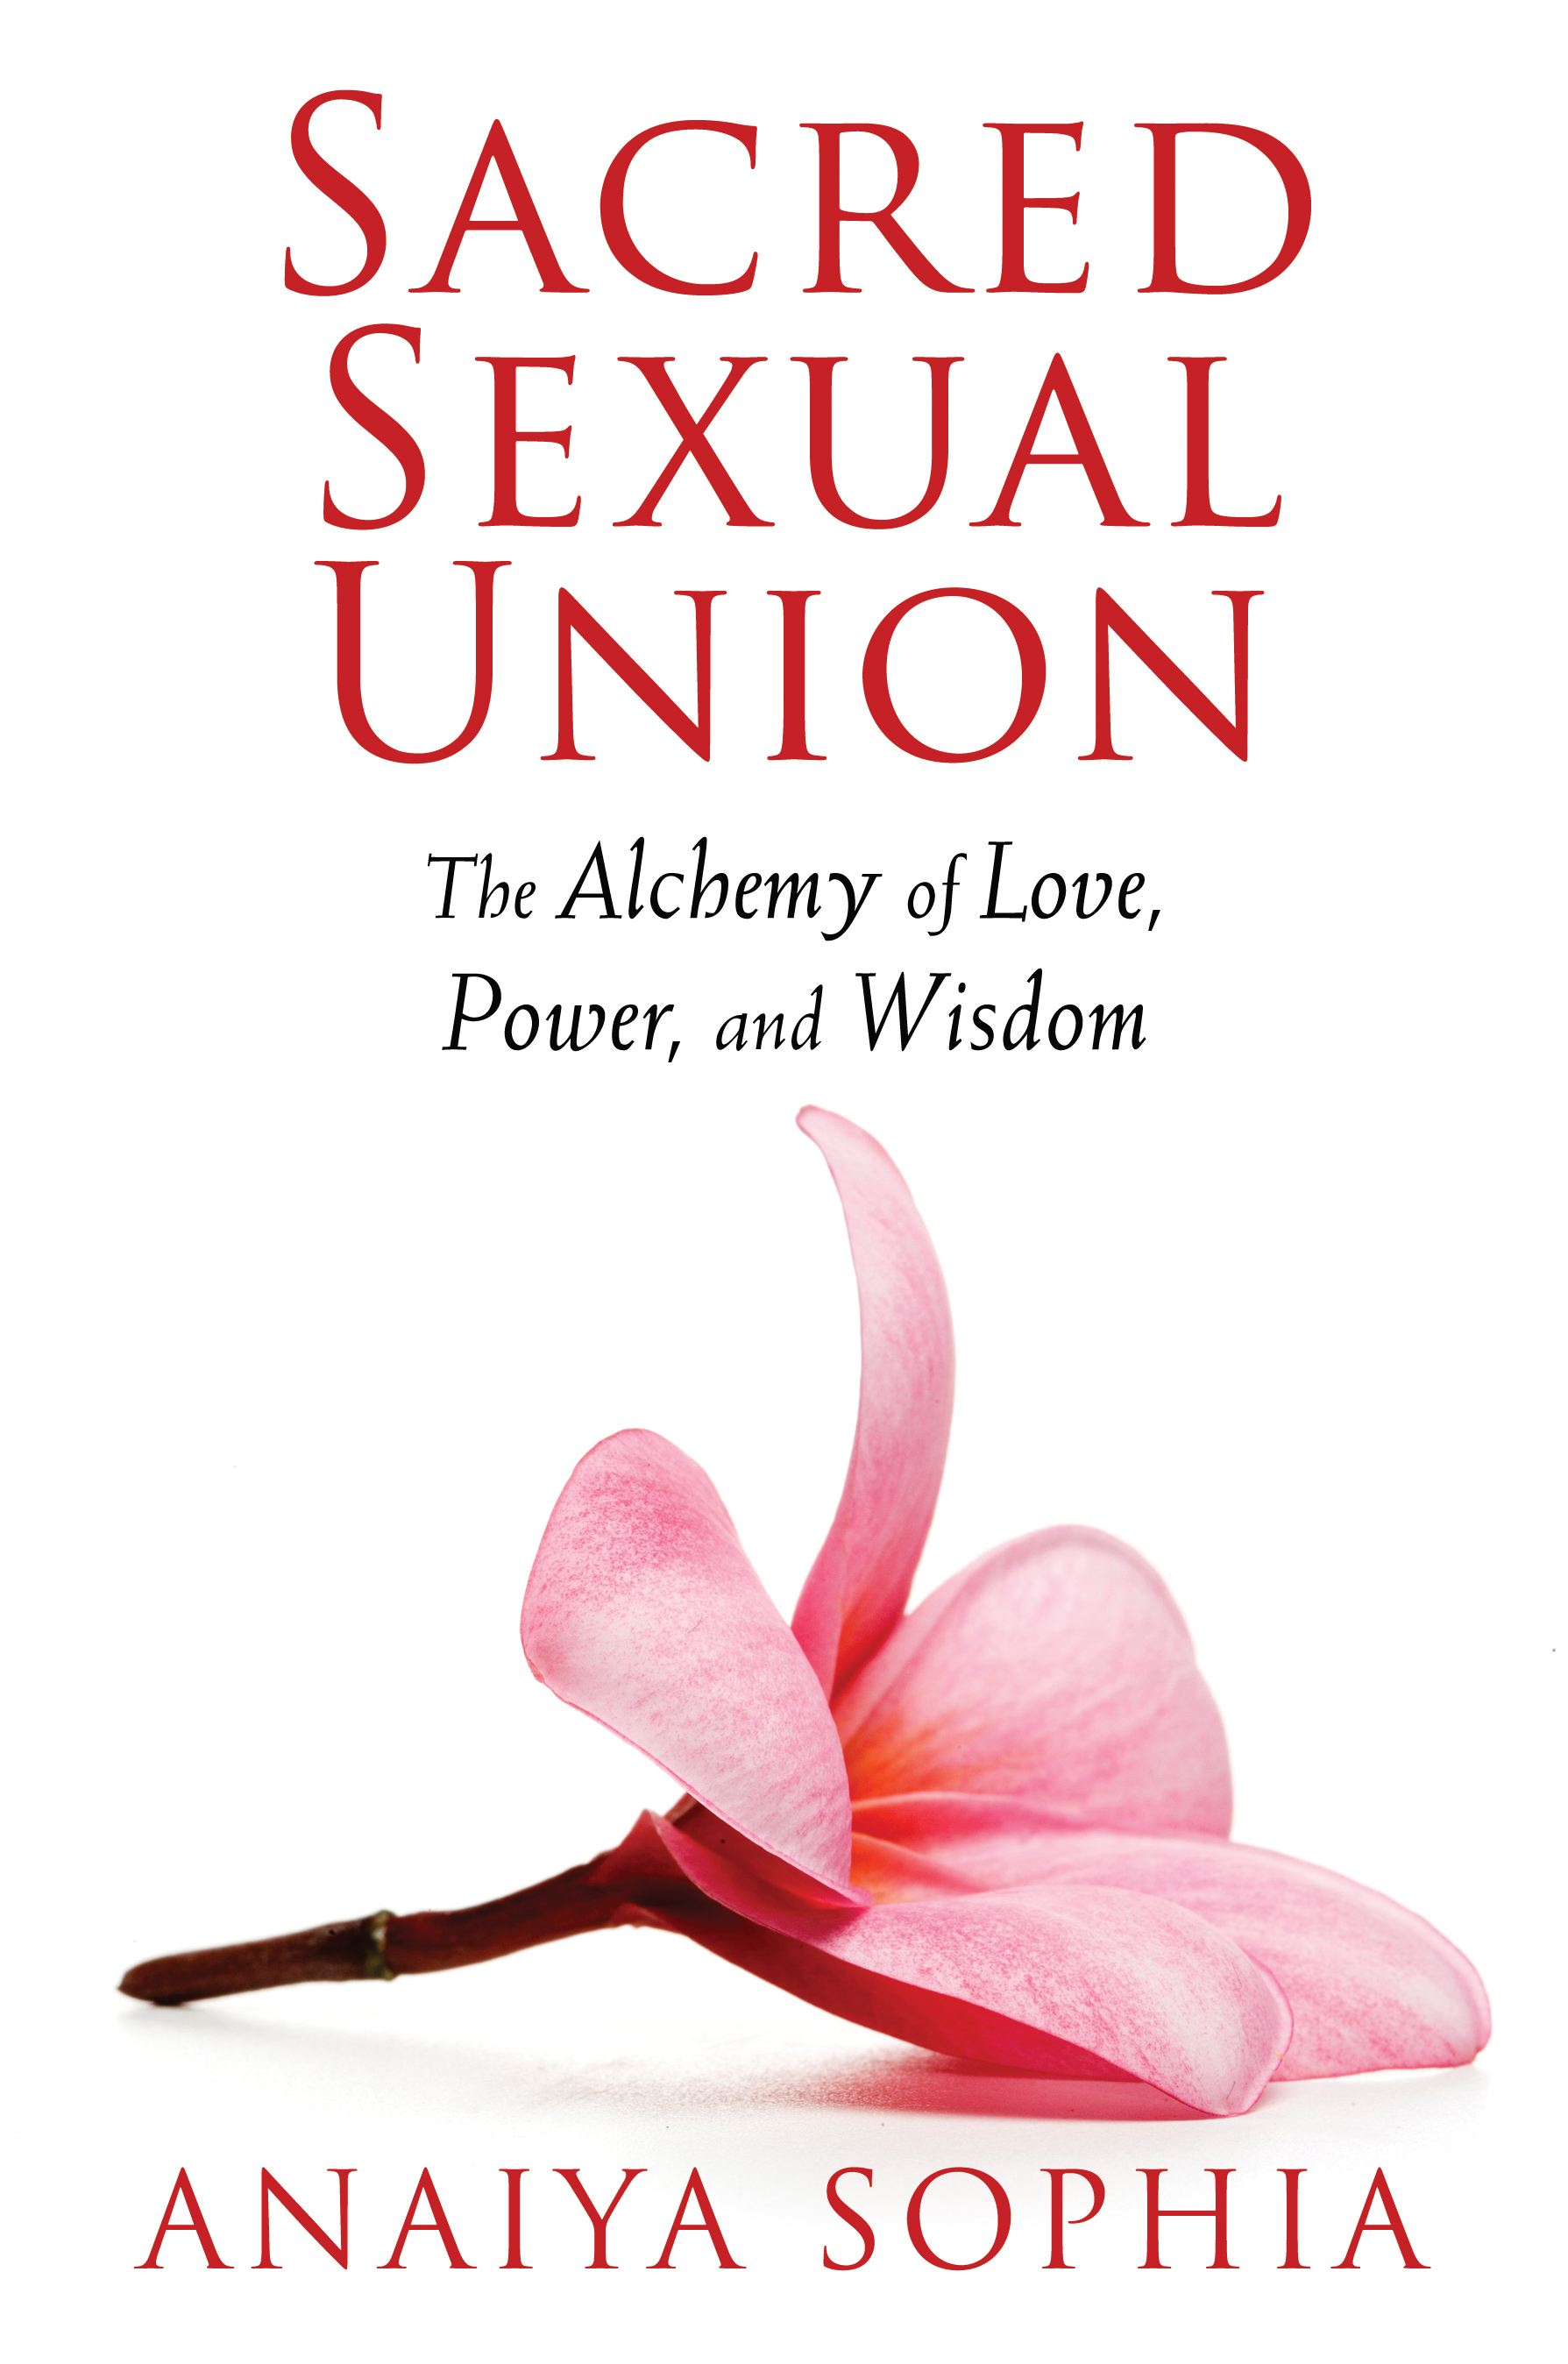 Sacred sexual union 9781620550076 hr